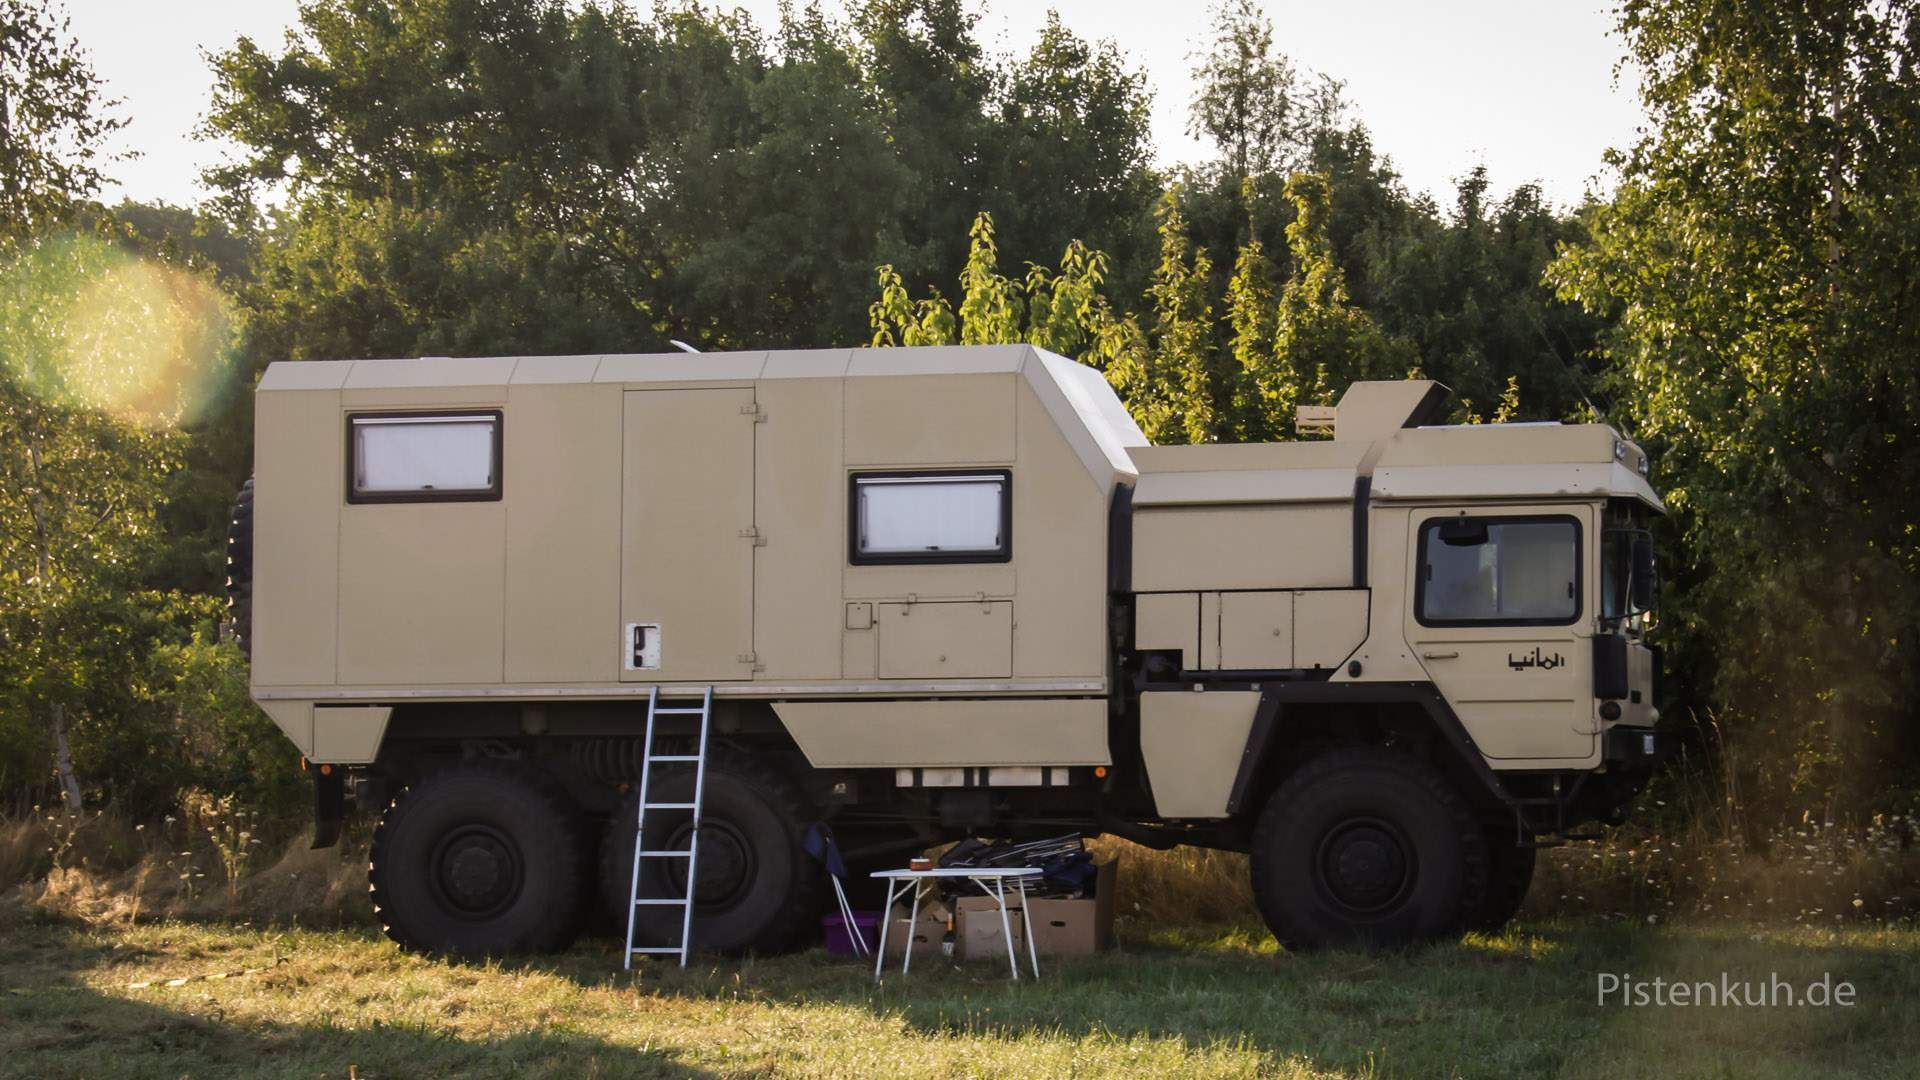 6x6 MAN KATCamper | Expedition vehicle, Expedition truck ...